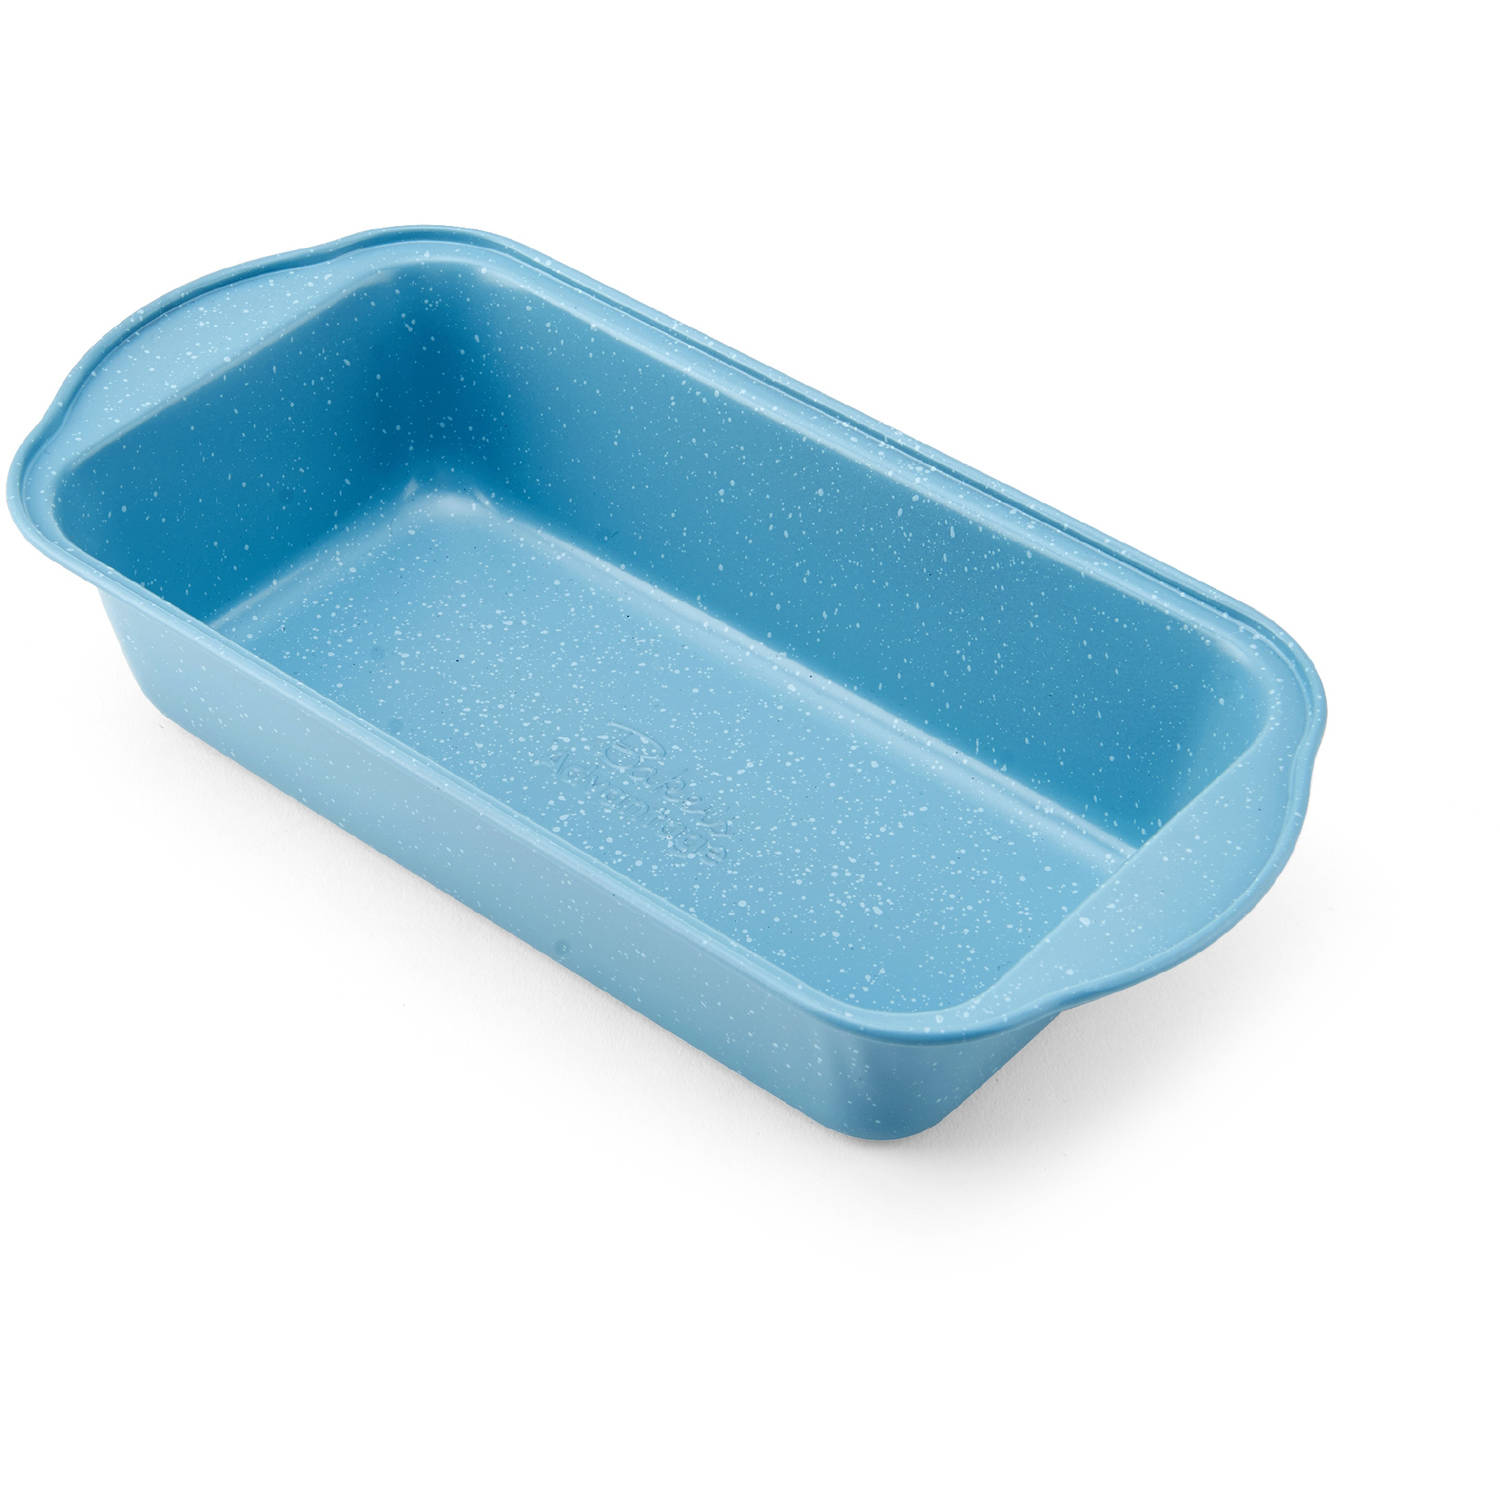 Lifetime Brands Baker's Advantage 9 Inch x 5 Inch Nonstick Loaf Pan,